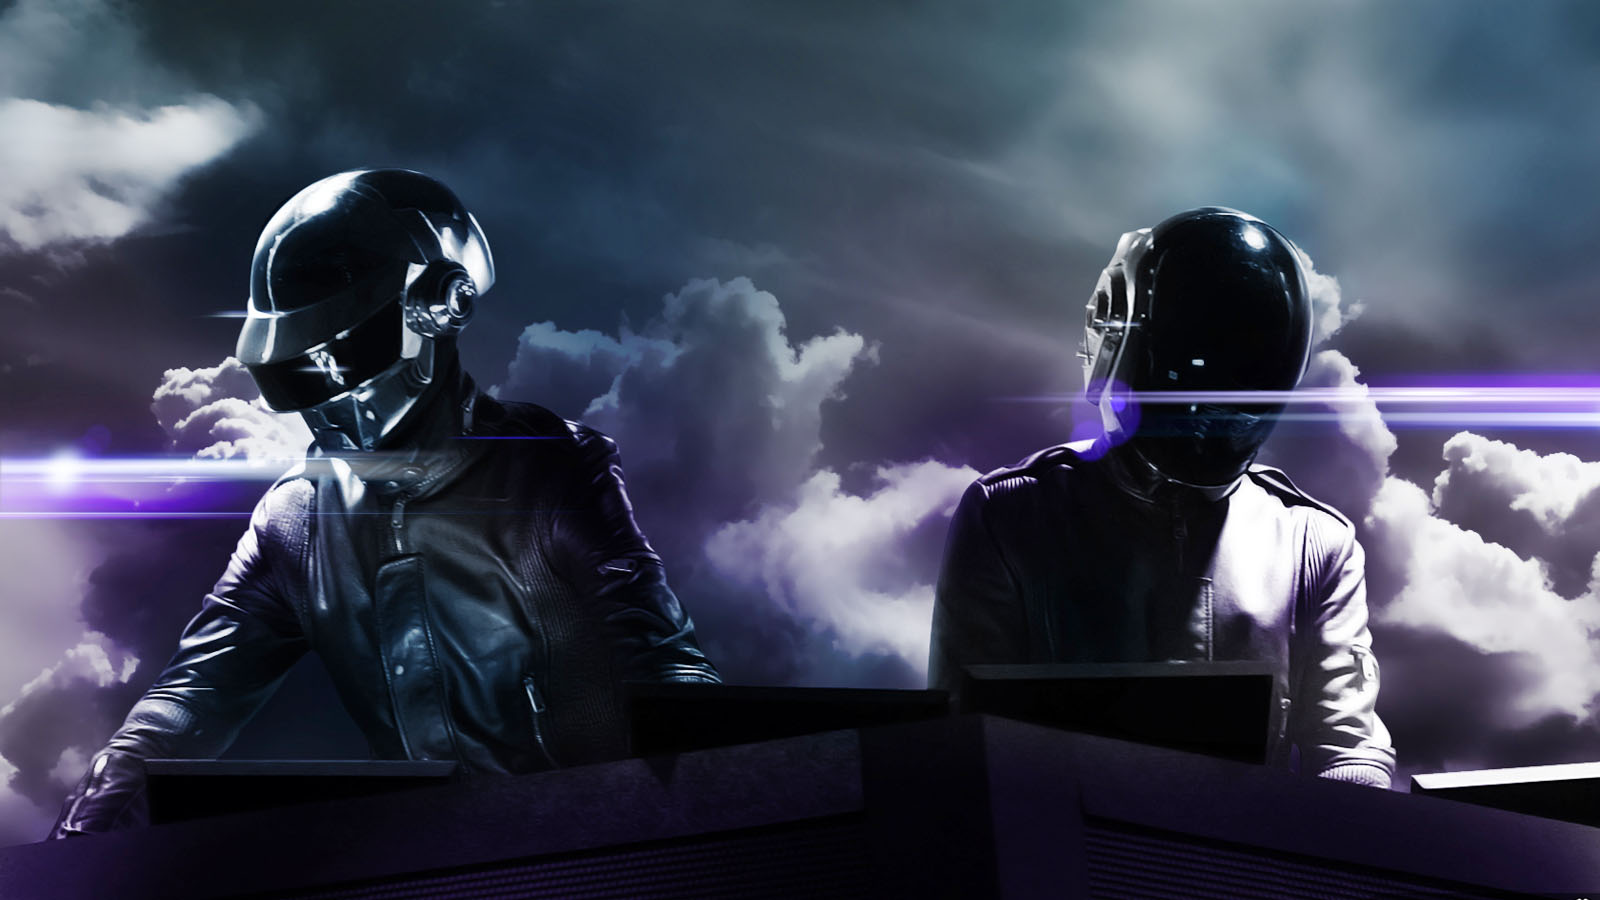 Daft Punk Wallpaper and Background Image | 1600x900 | ID ...